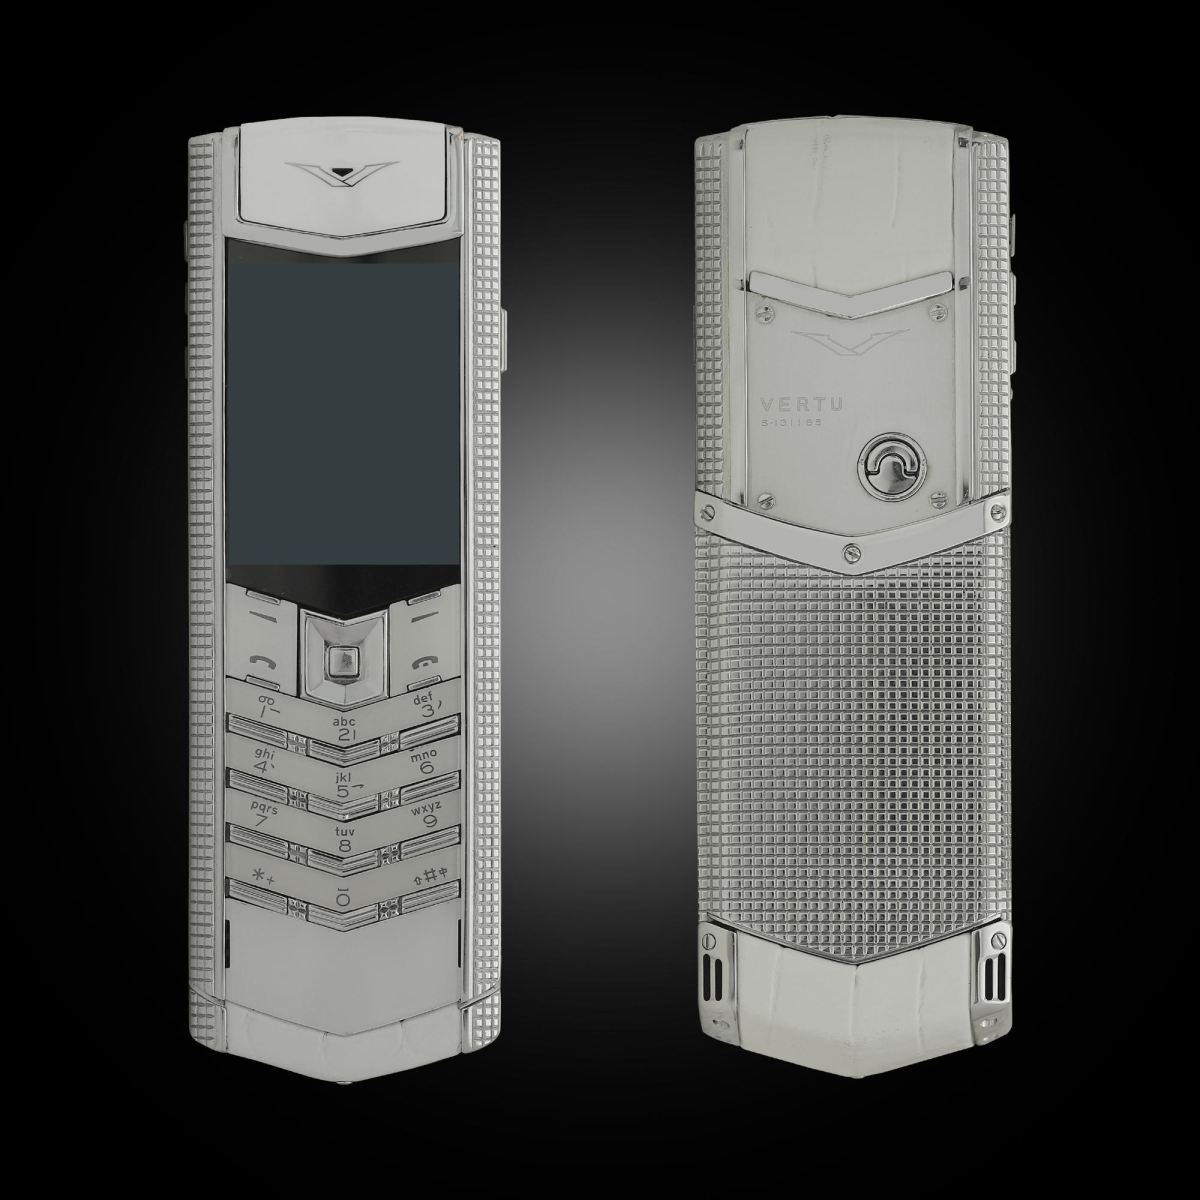 Vertu Signature S Clous de Paris White